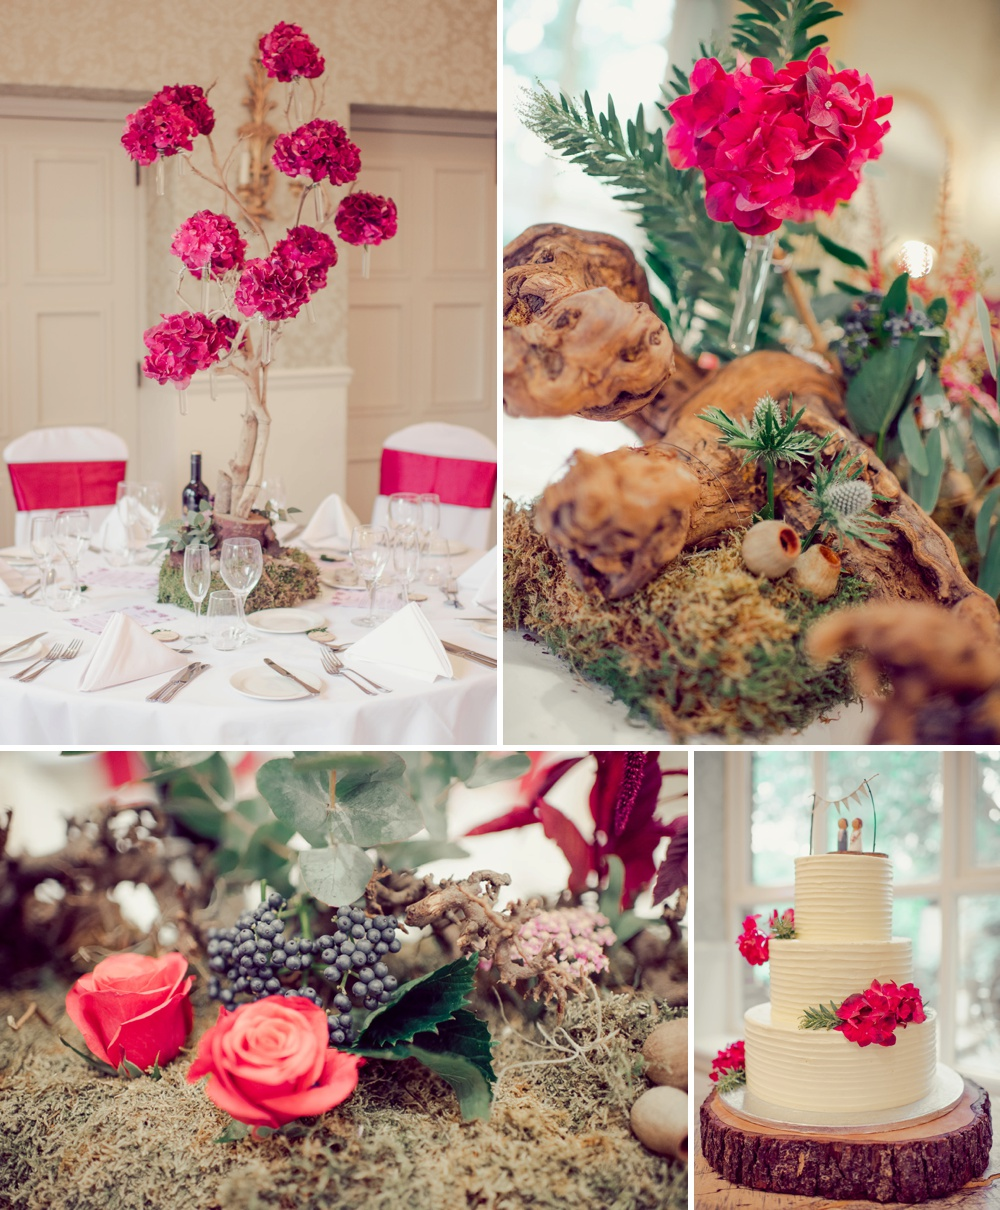 Wedding at Careysmanor with trees of orchids wedding cake and roses